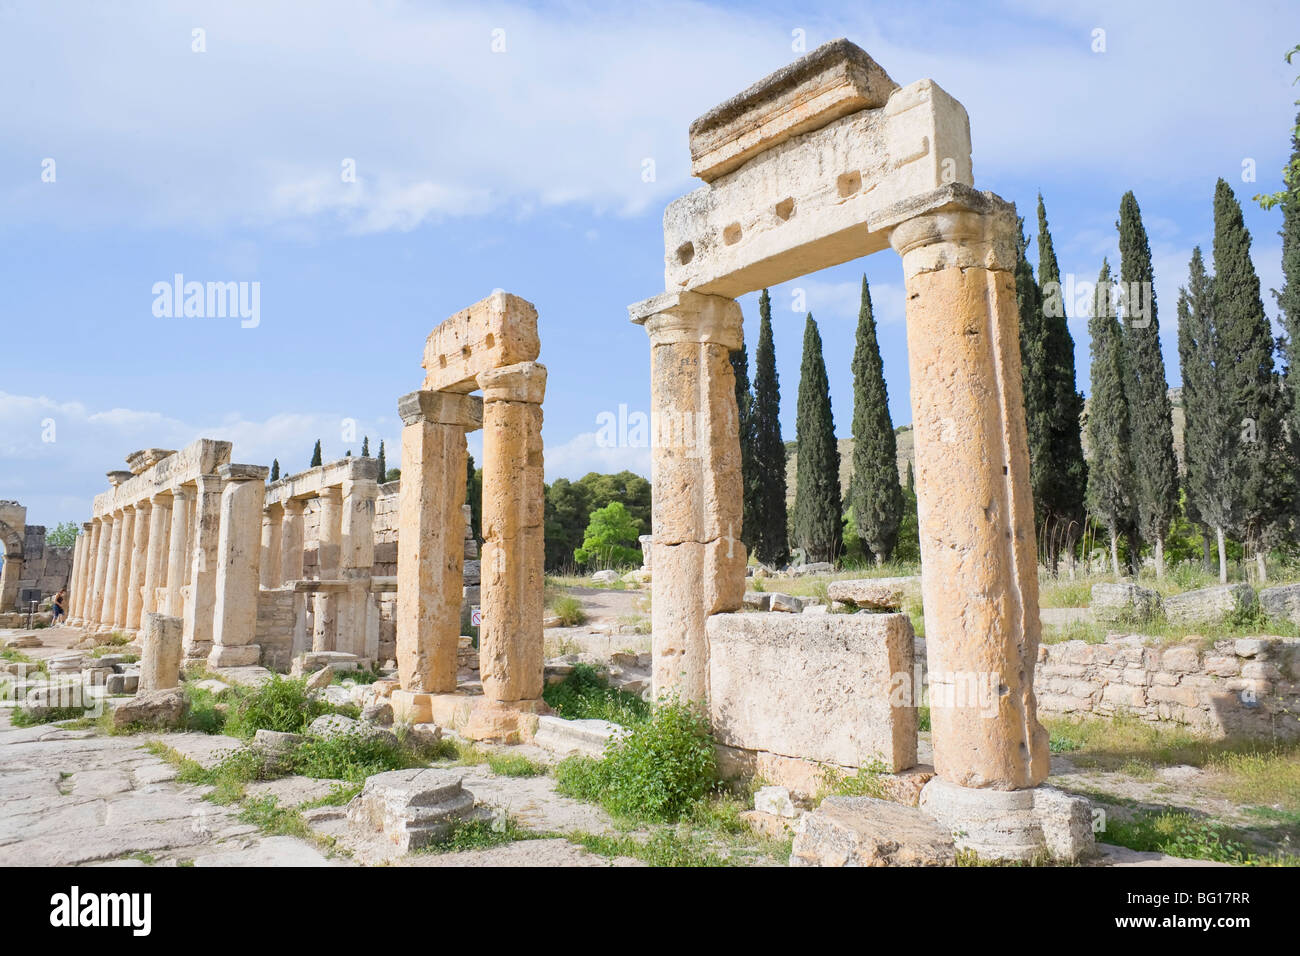 Ancient Necropolis, Monumental way, Hierapolis, Pamukkale, UNESCO World Heritage Site, Anatolia, Turkey, Asia Minor, - Stock Image